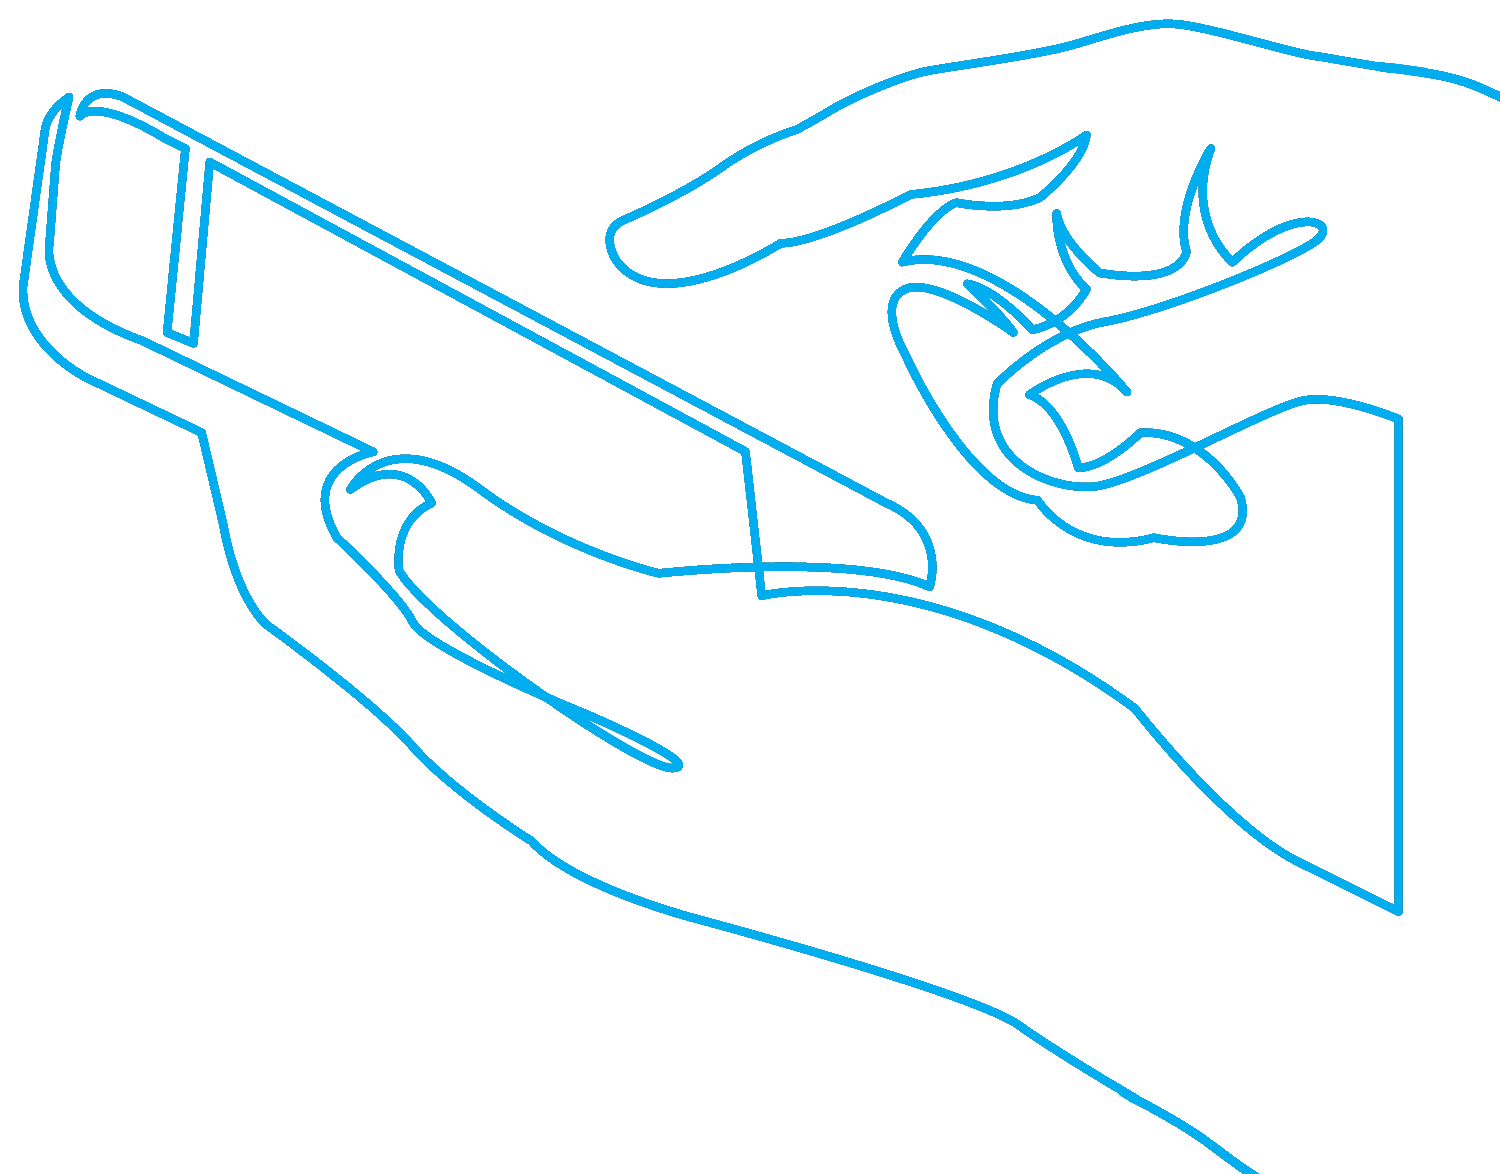 Line drawing of a mobile phone